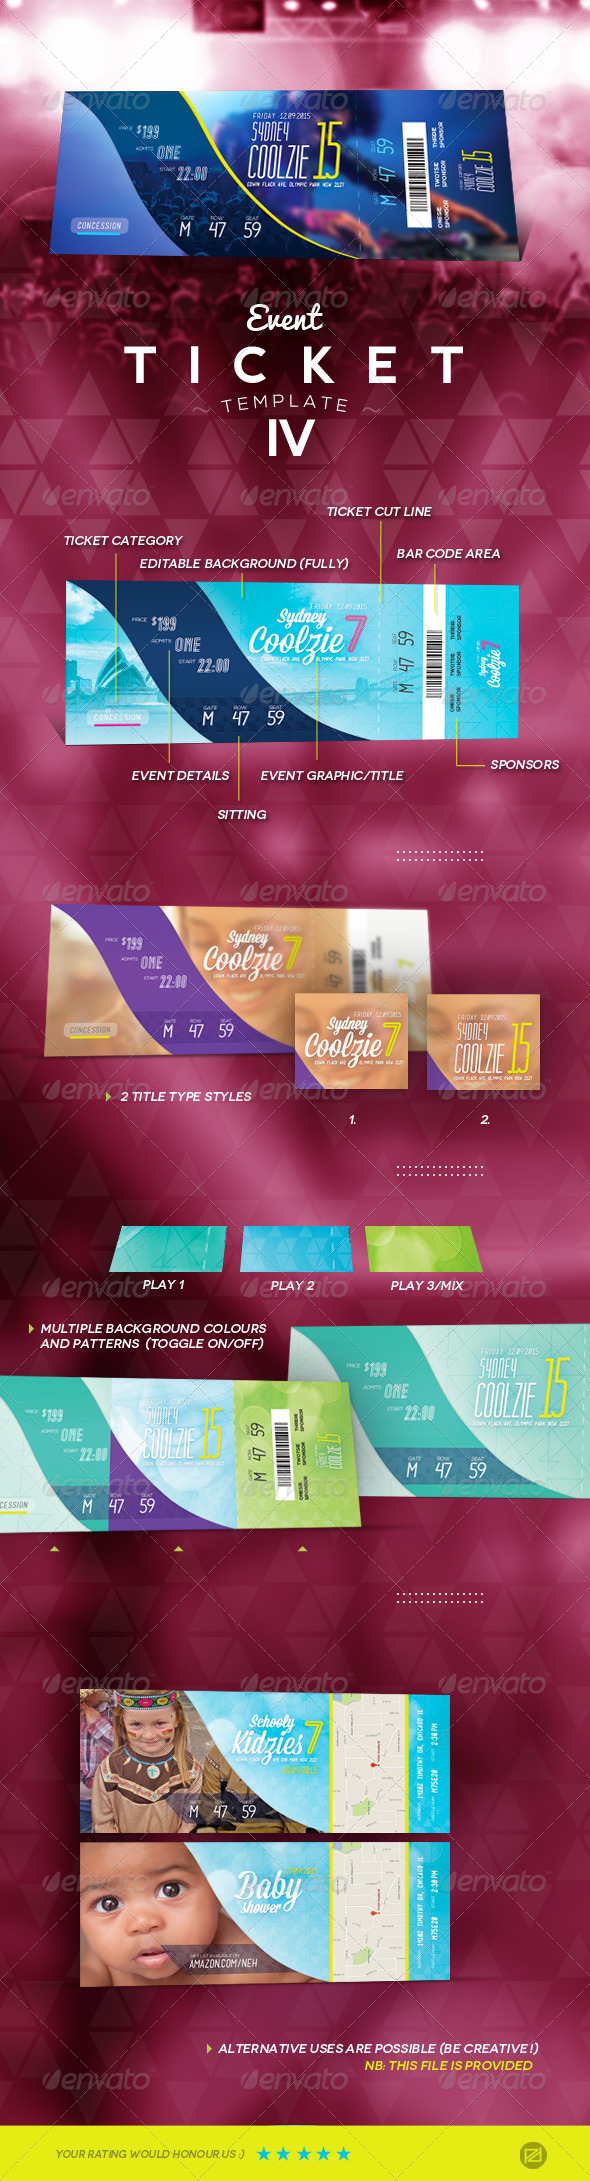 GraphicRiver Event Ticket Template IV 7600463